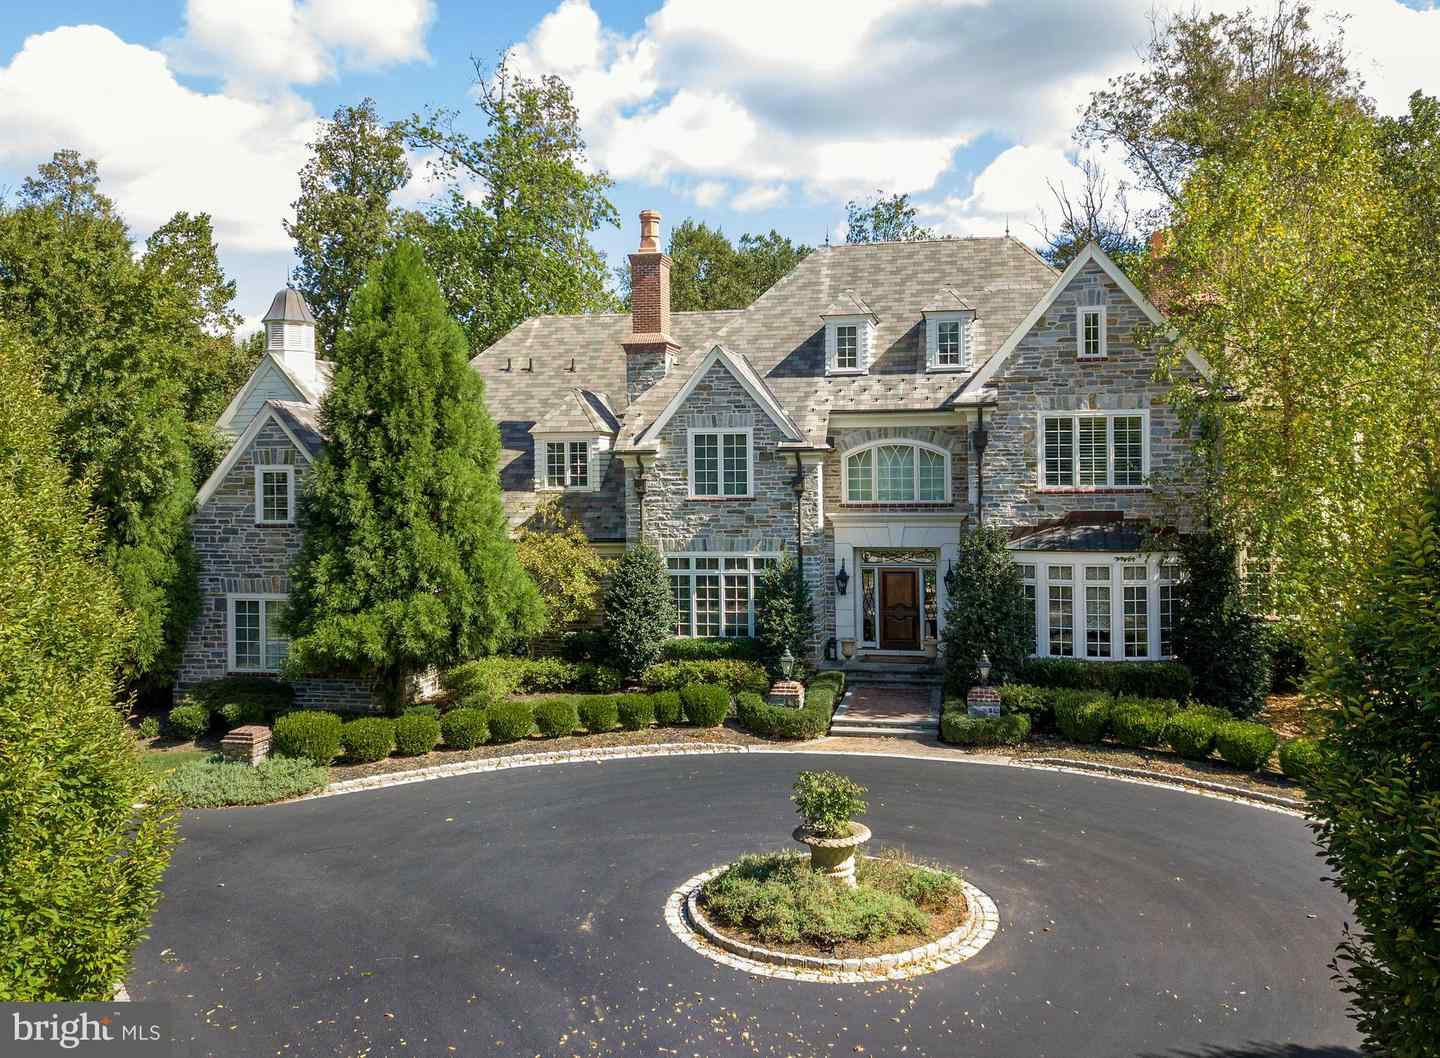 Malvern Bank House of the Week: Stately 6 Bedroom Colonial in Newtown Square